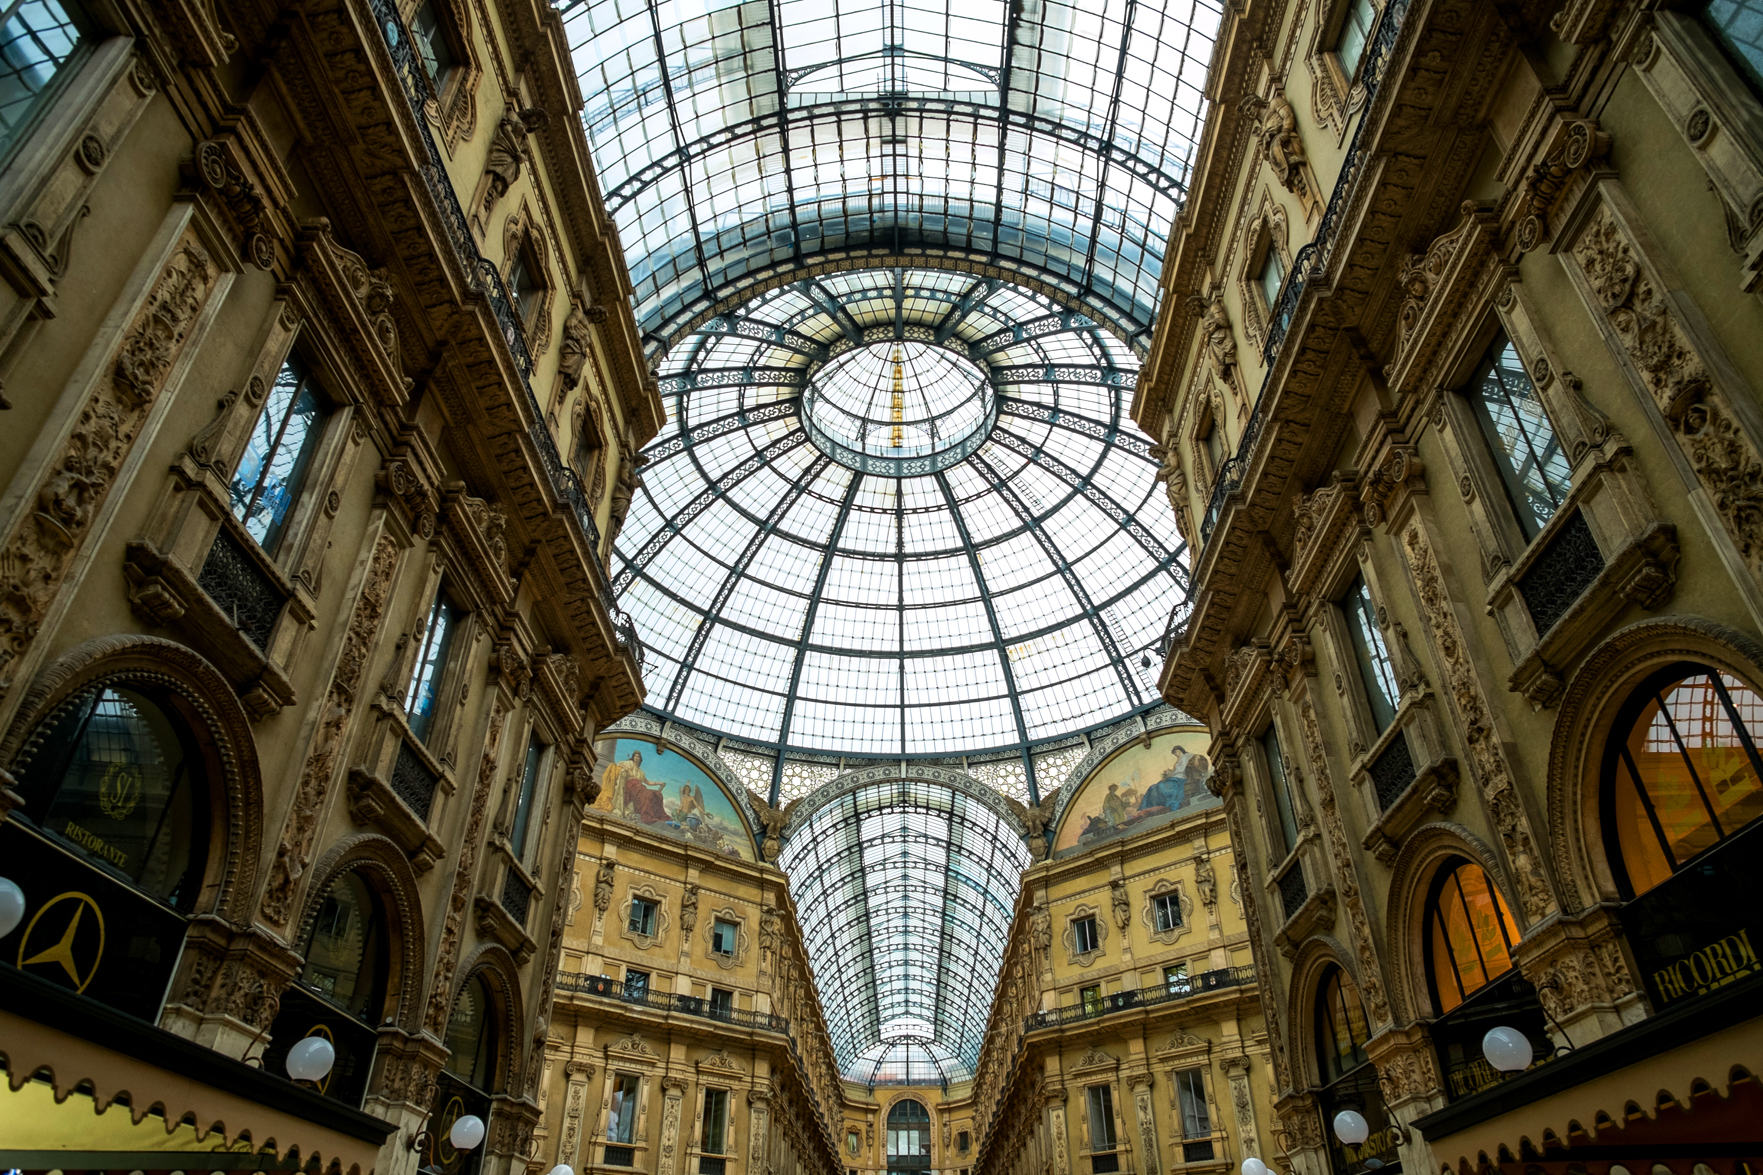 The Galleria Vittorio Emanuele II is the oldest shopping mall in Italy.